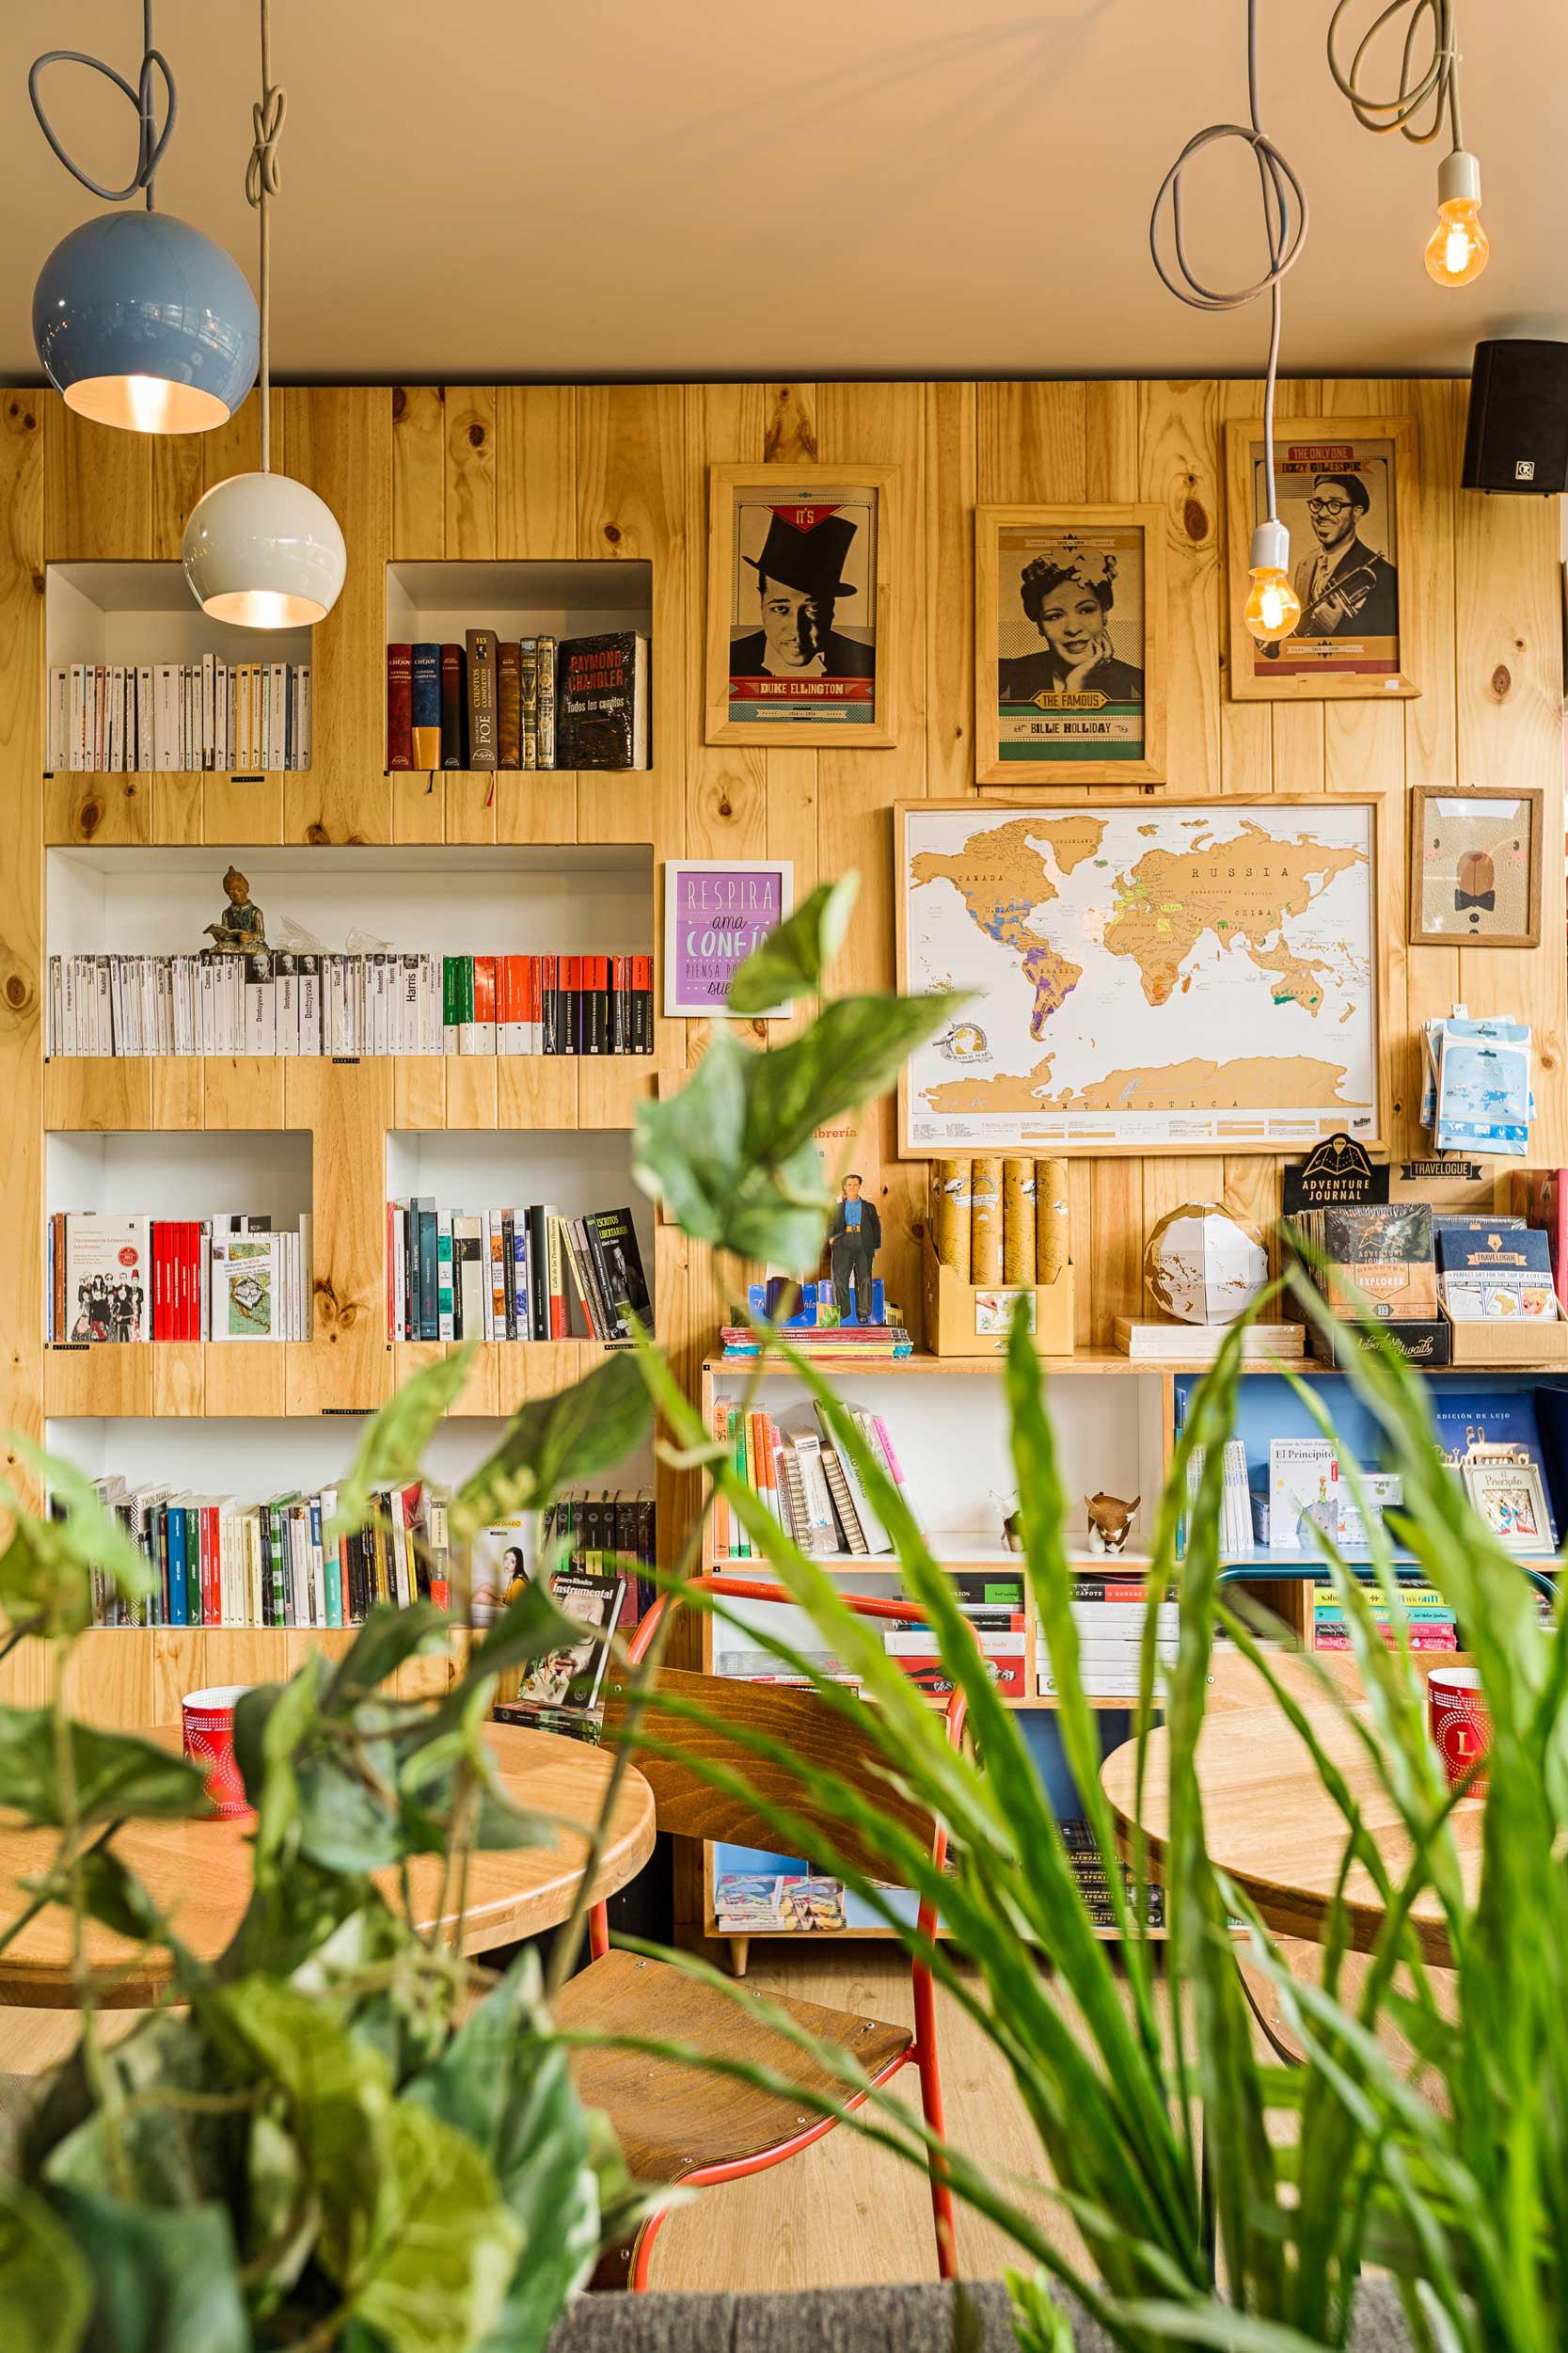 9 34 Bookstore Cafe 4